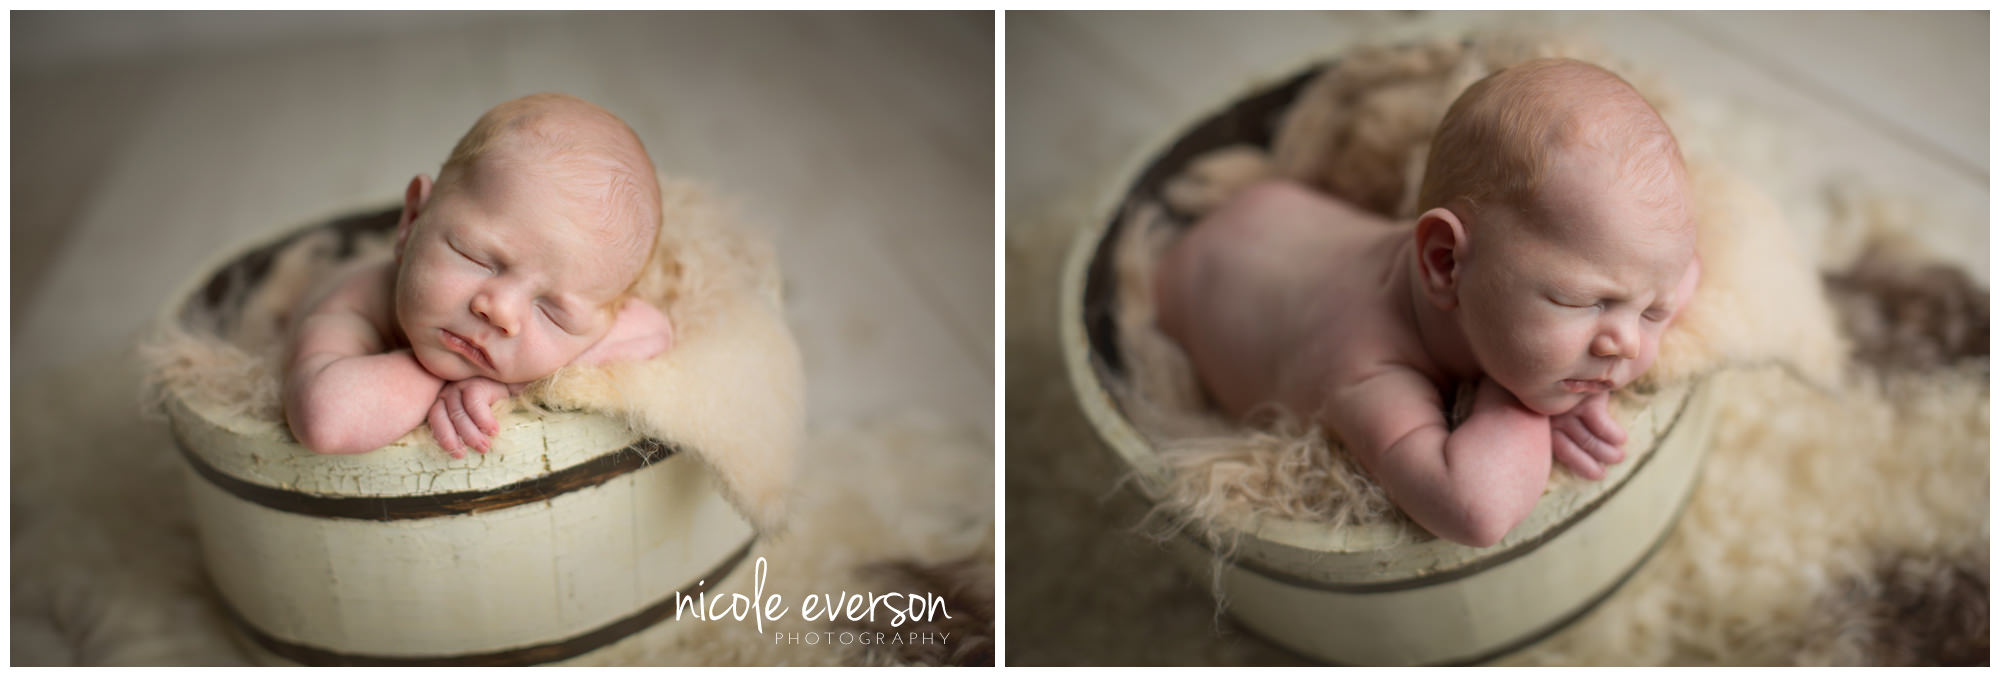 newborn photographed in a vintage bucket by Nicole Everson Photography